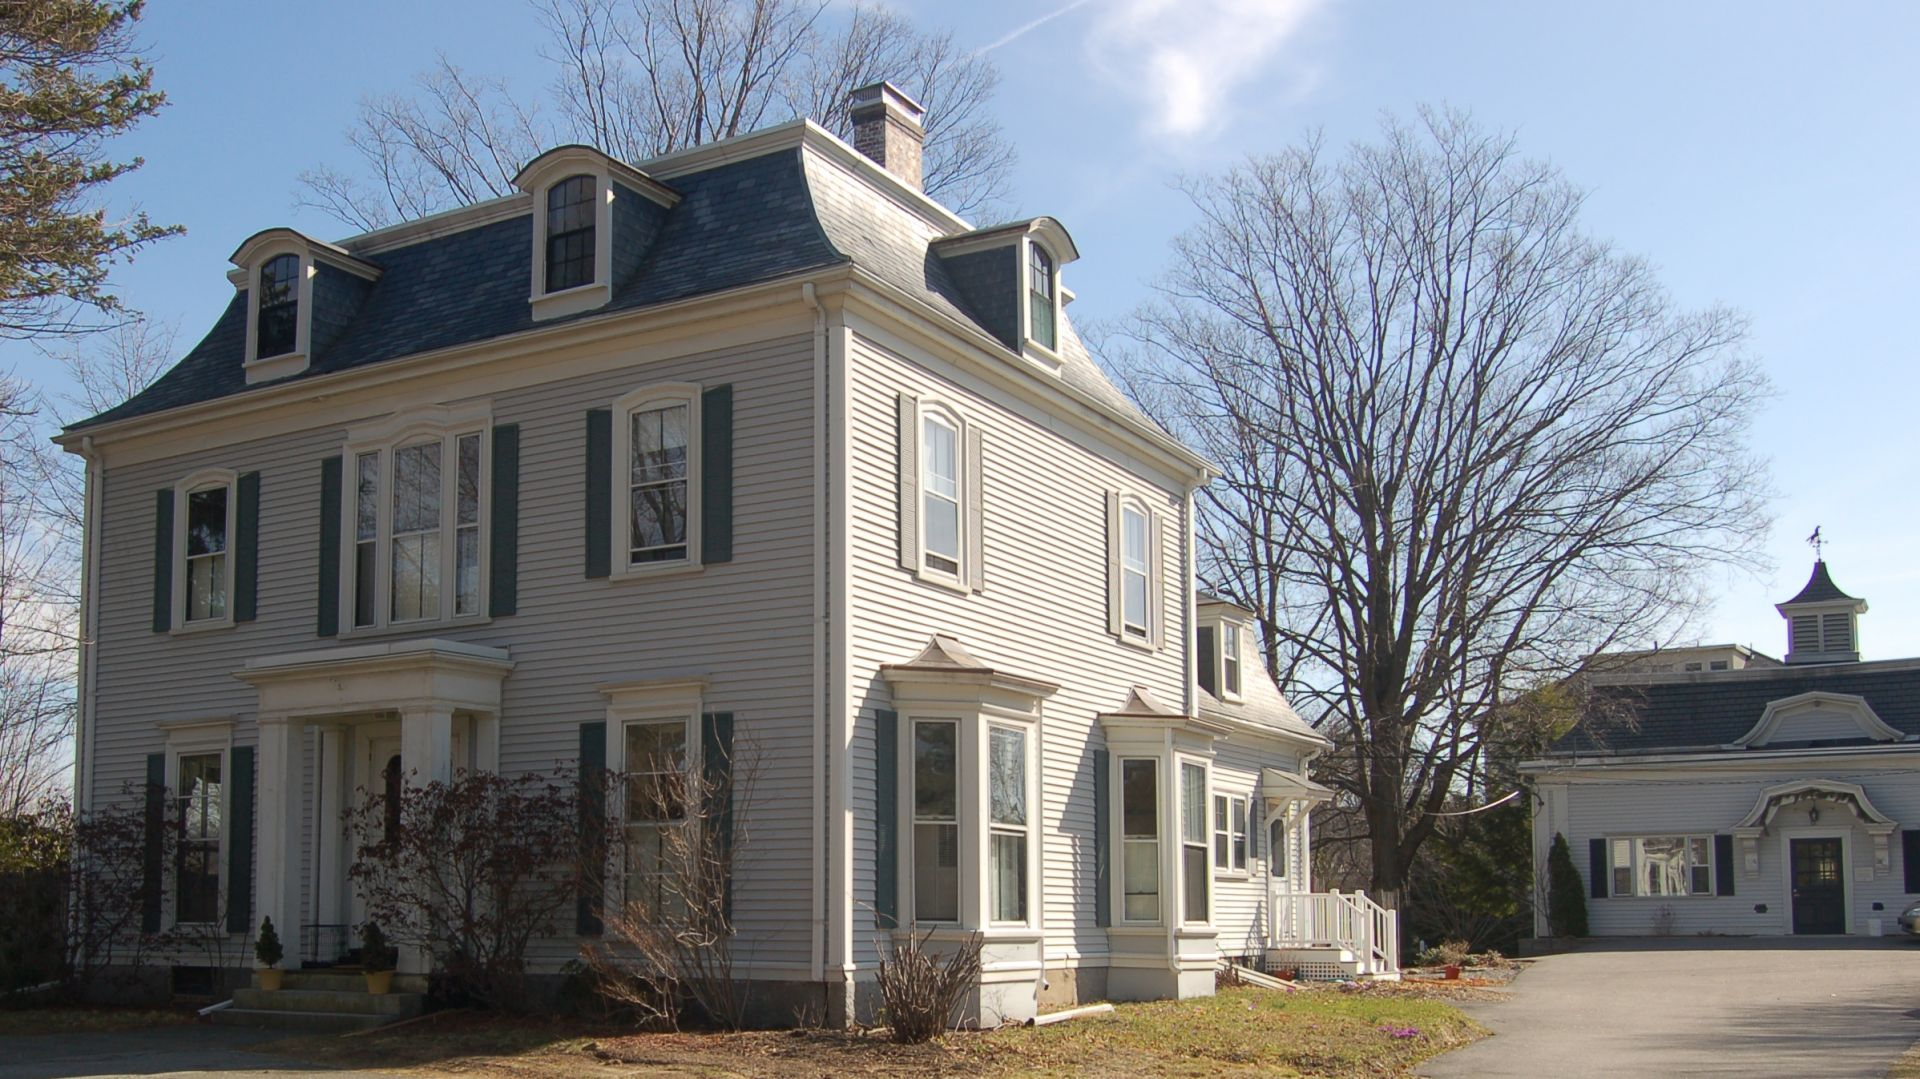 Webster House: Webster House is home to Fessenden